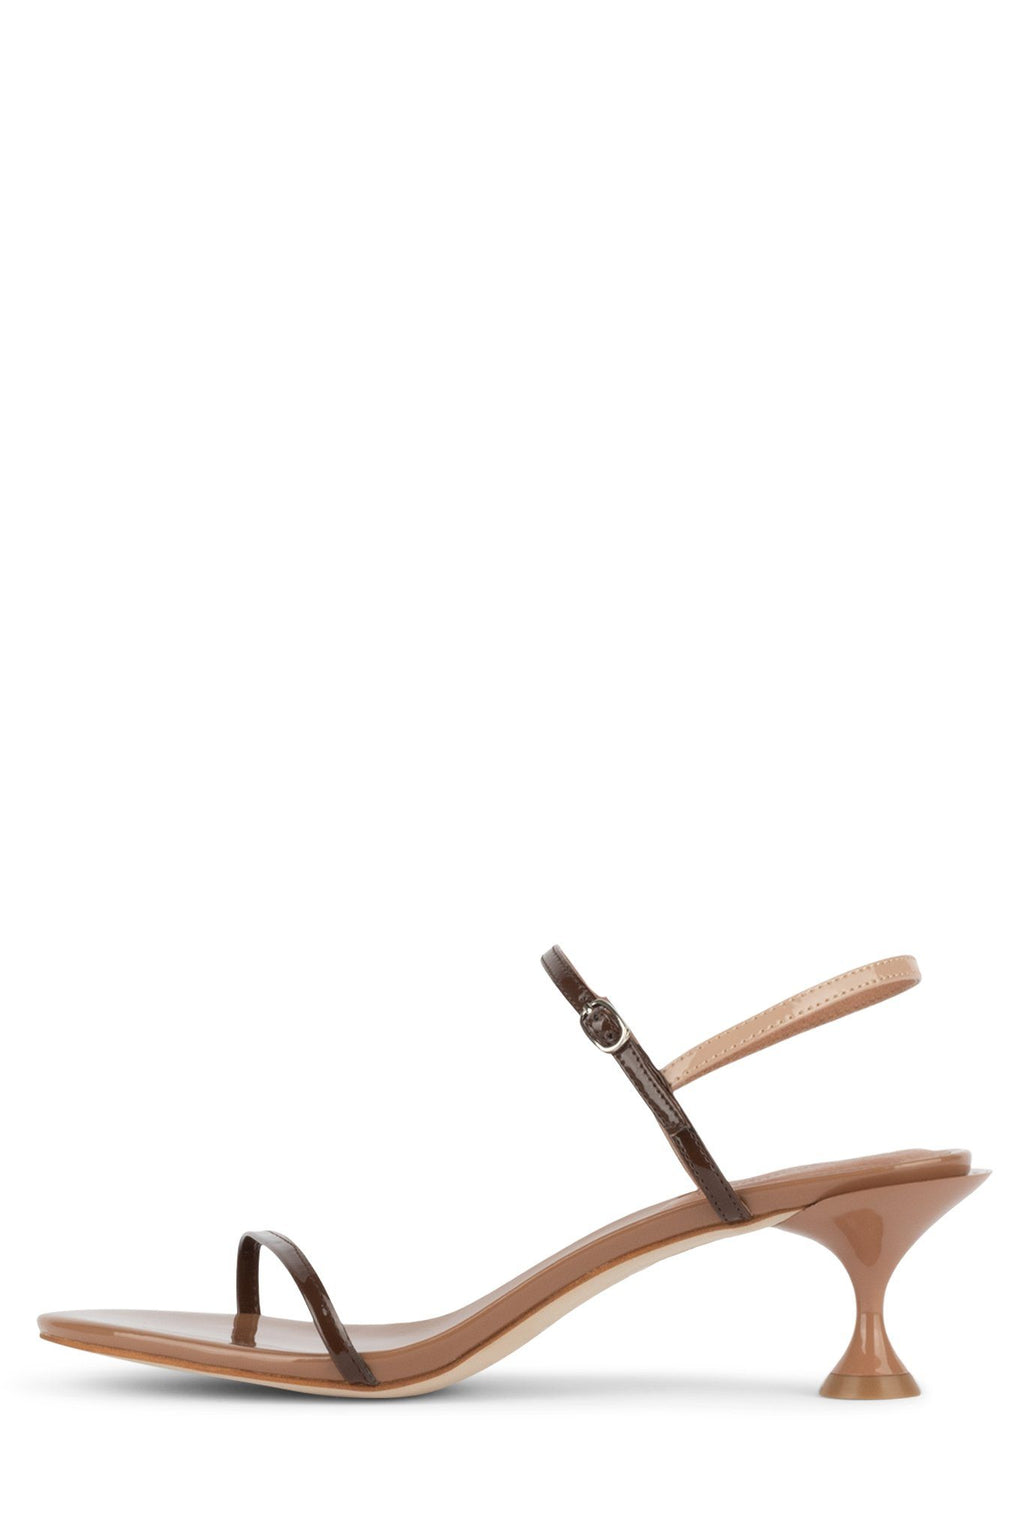 TWILIGHT-2 Heeled Sandal STRATEGY Nude Patent Multi 6